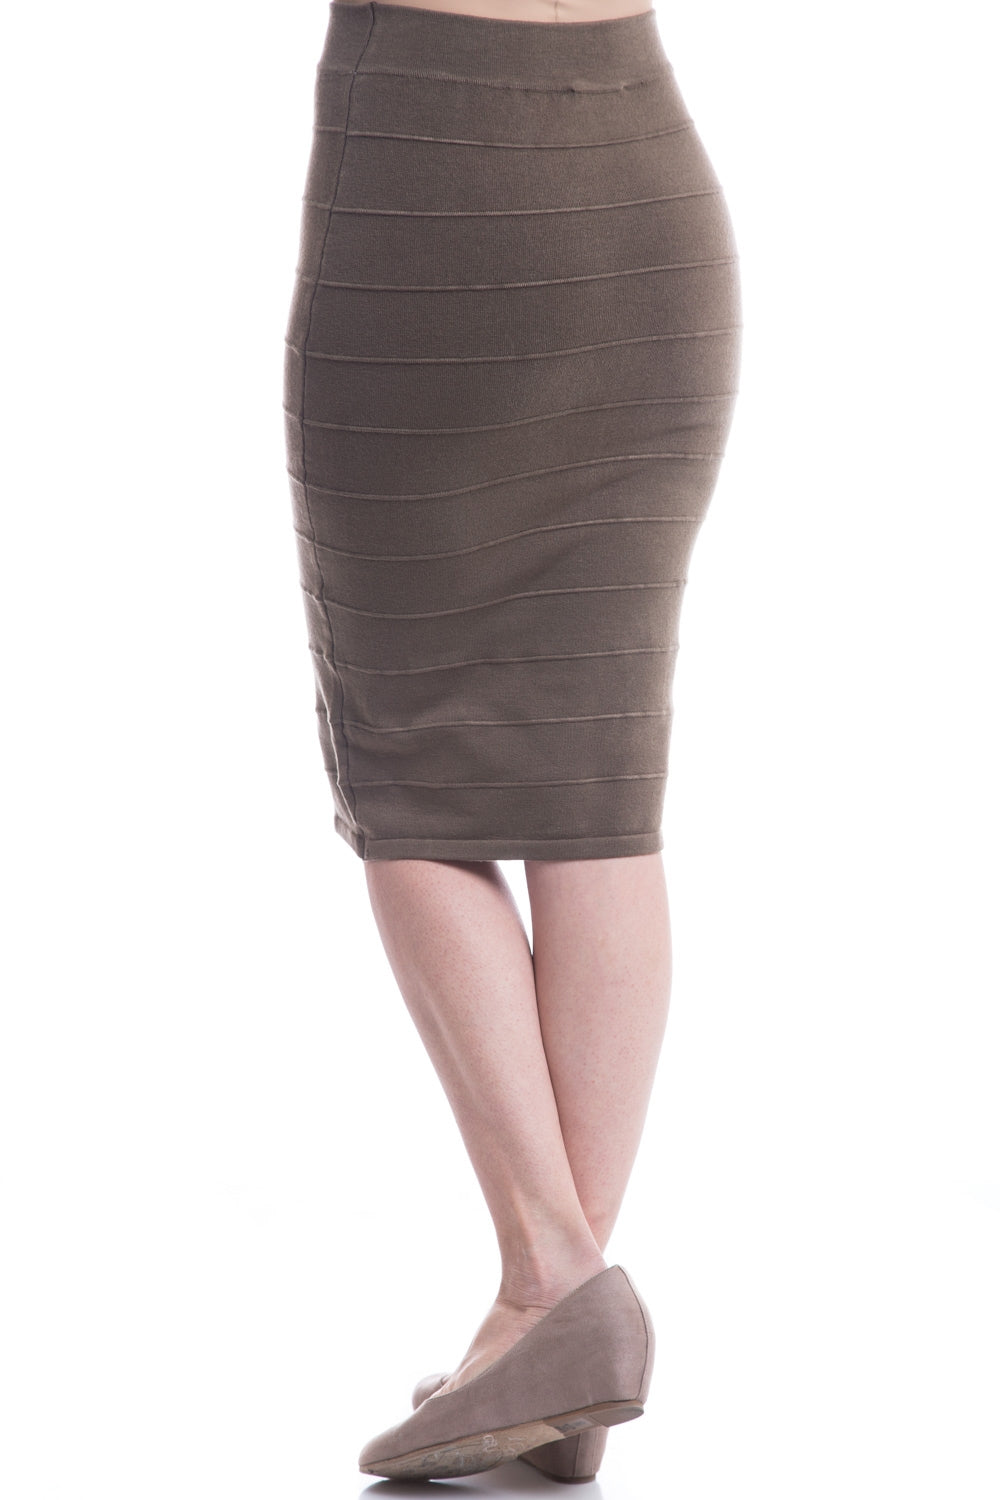 Type 2 Pencil Point Skirt